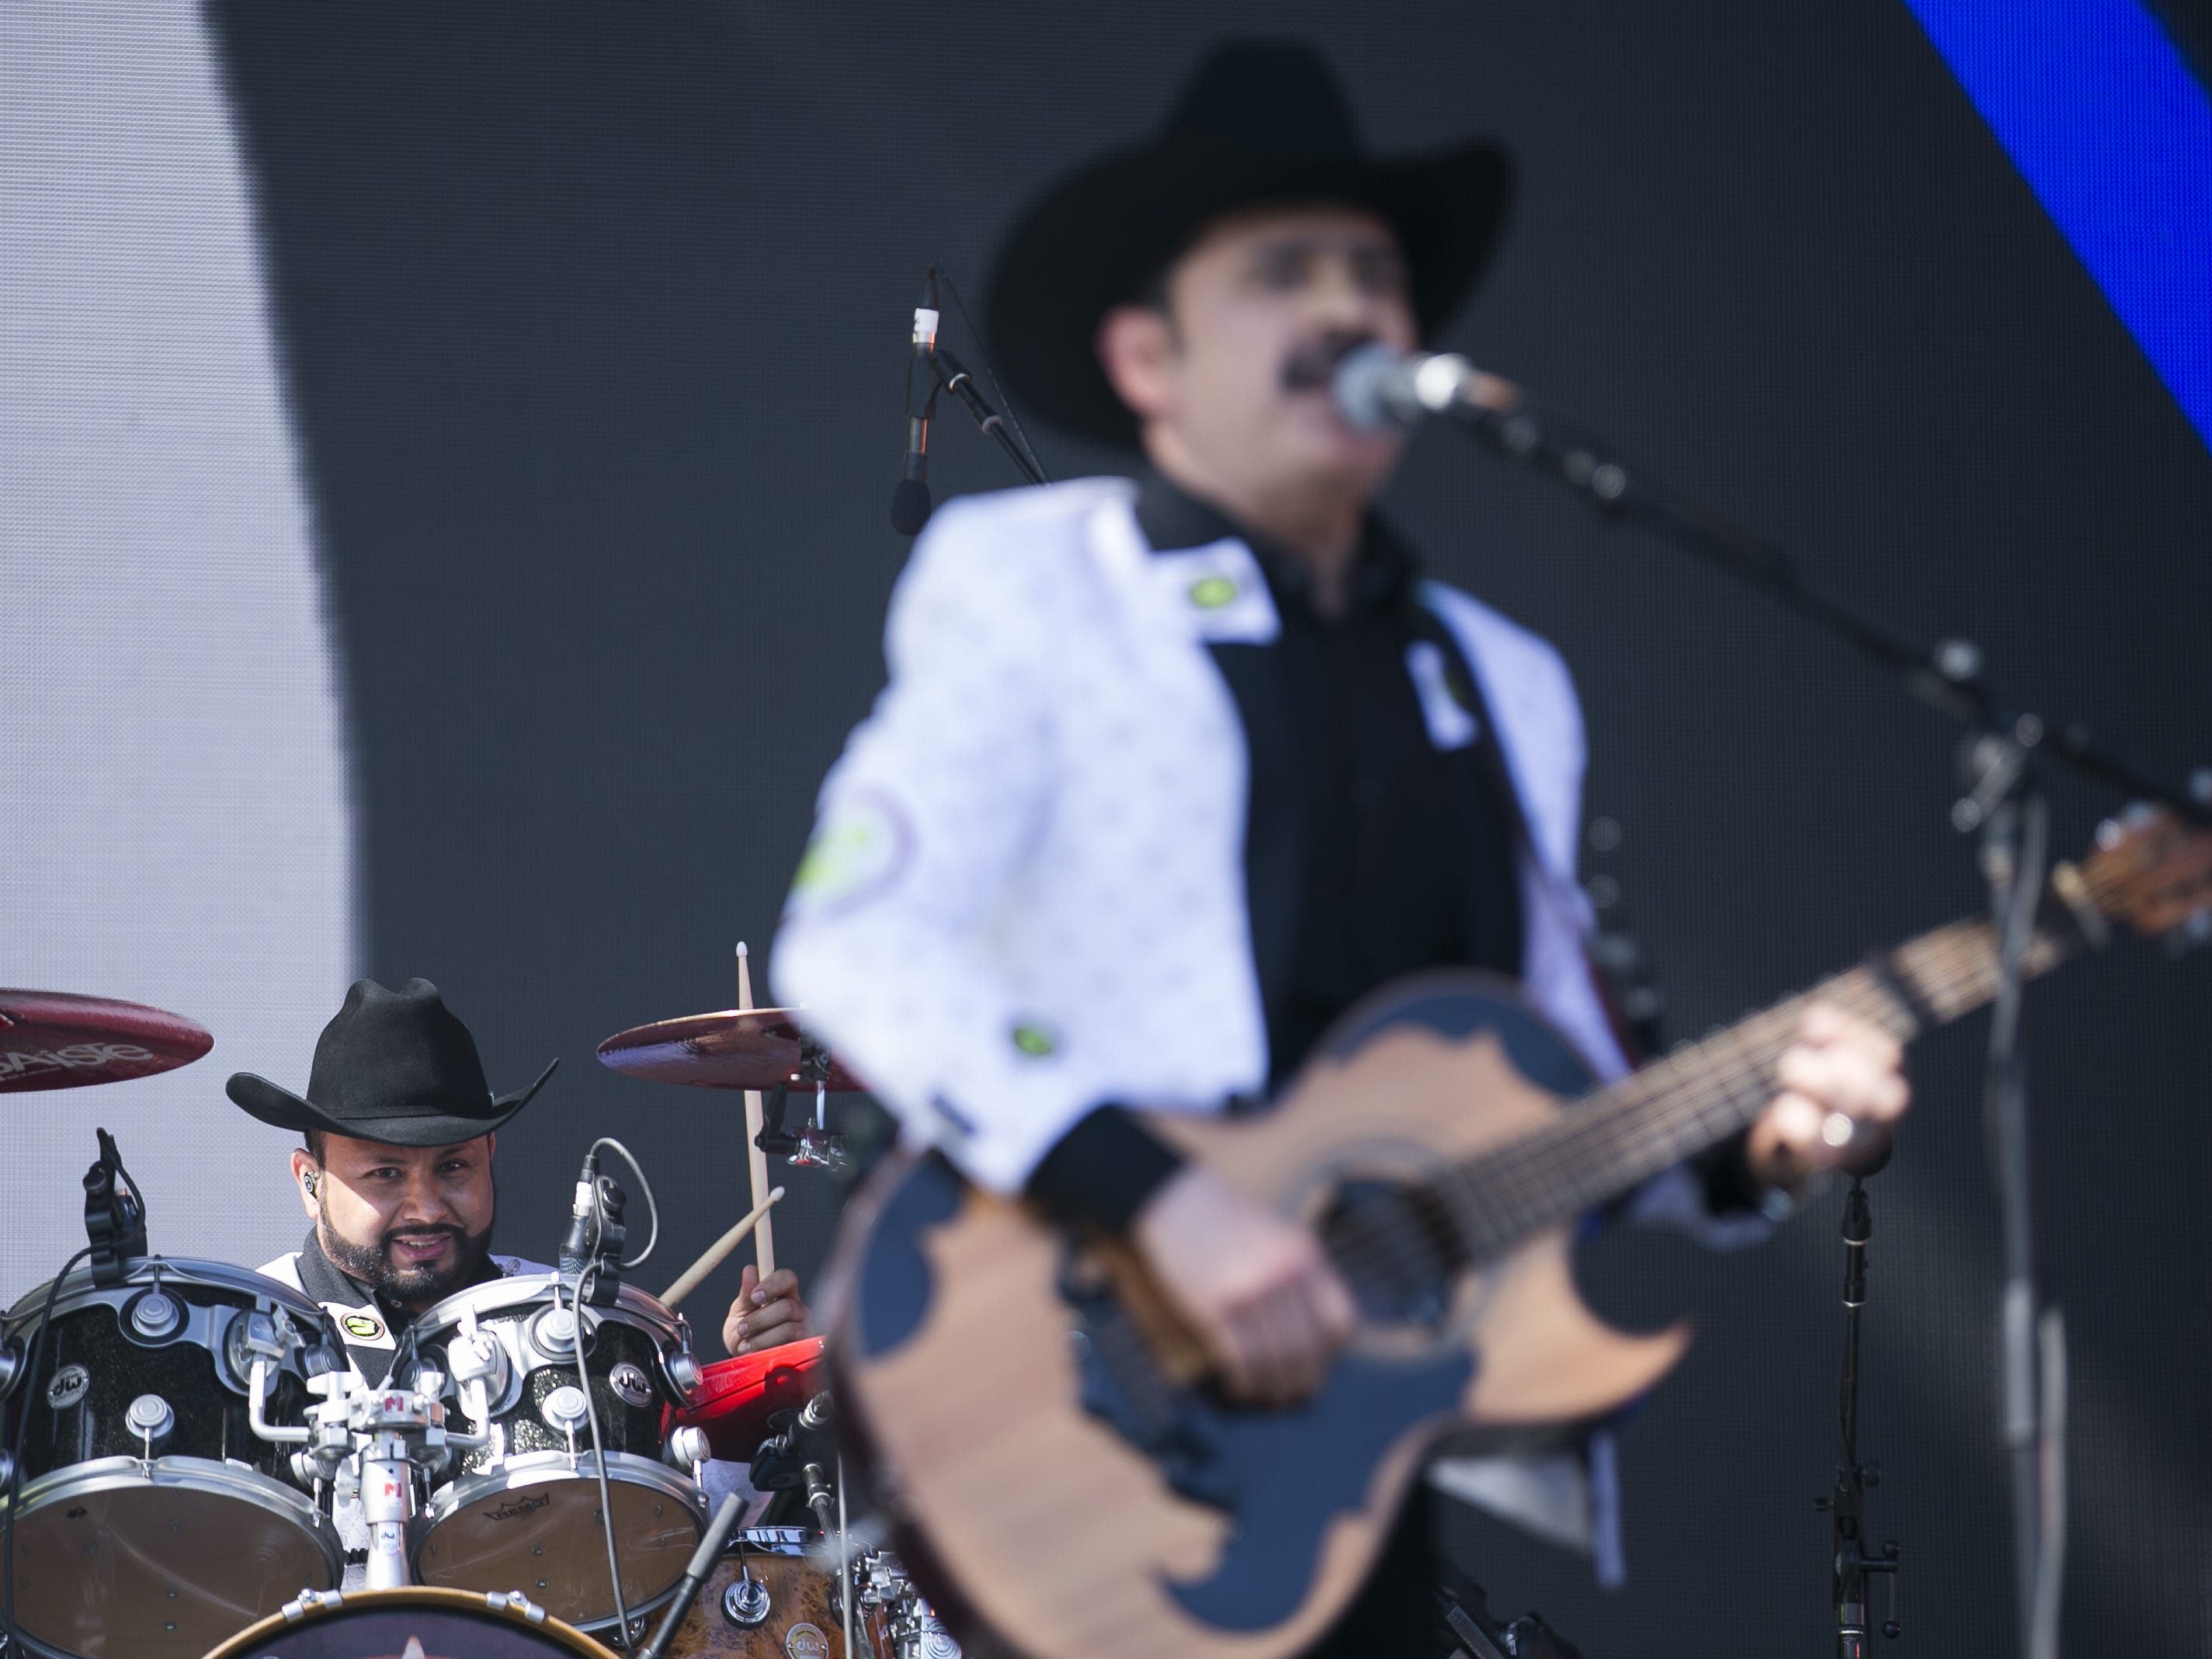 Los Tucanes de Tijuana perform on the main stage at the Coachella Valley Music and Arts Festival in Indio, Calif. on April 12, 2019.